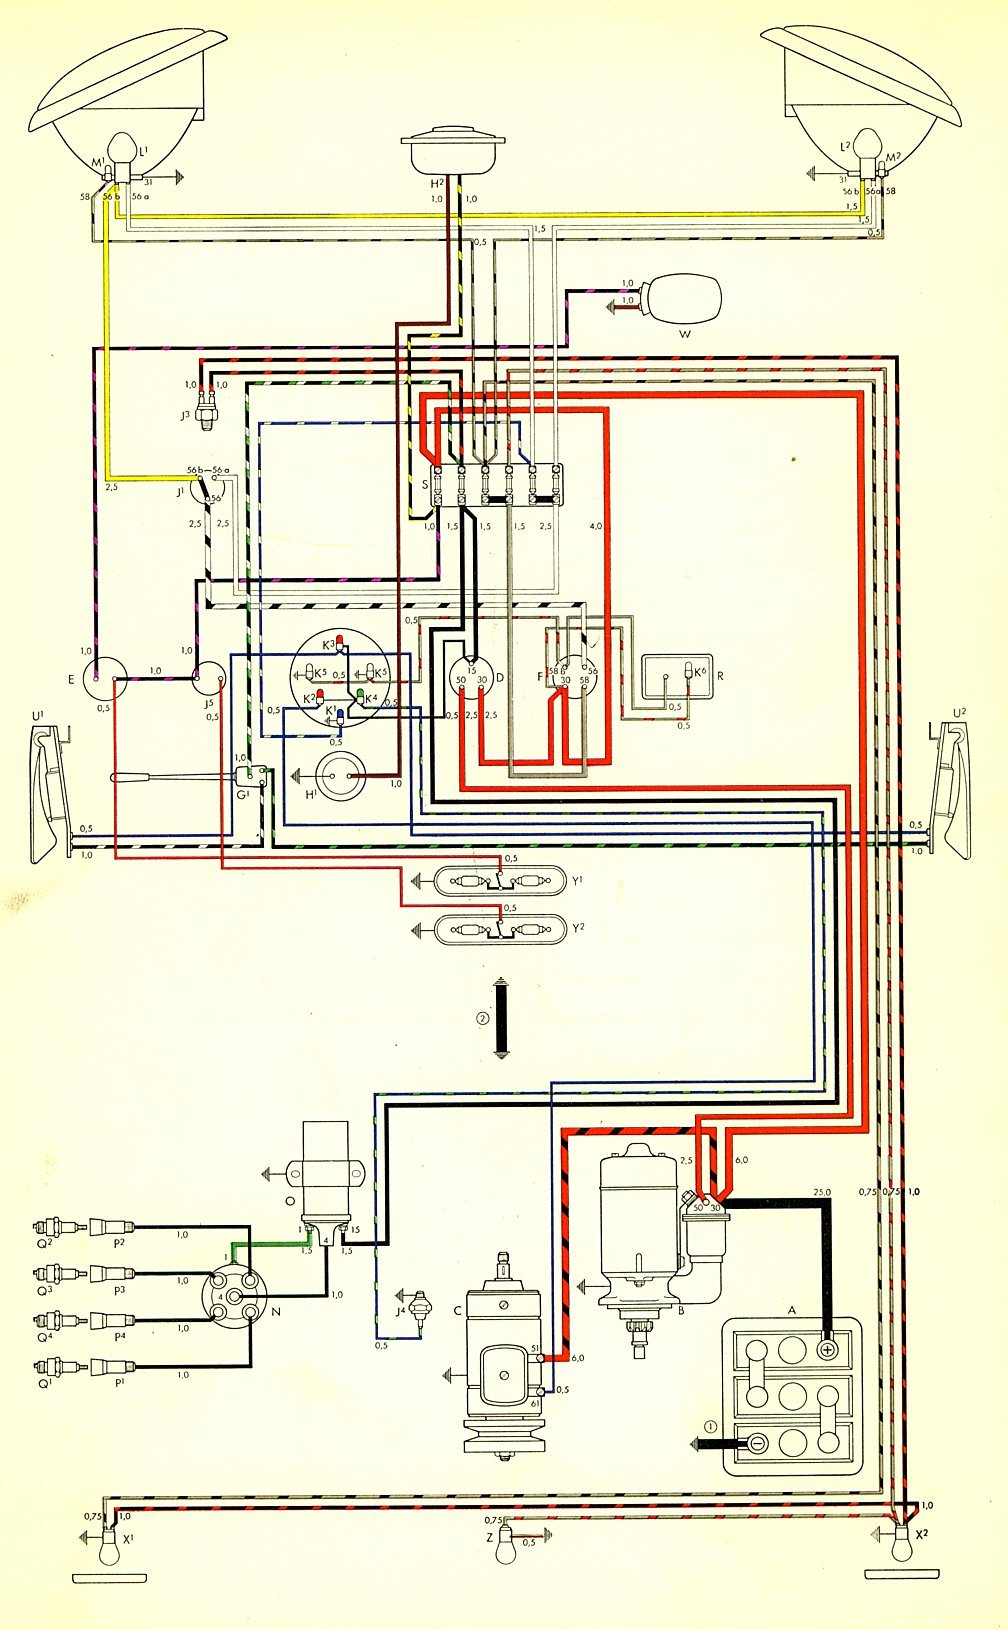 1970 Vw Ign Wiring Diagram Third Level Volvo S80 Ignition Volkswagen Box Engine Indicator